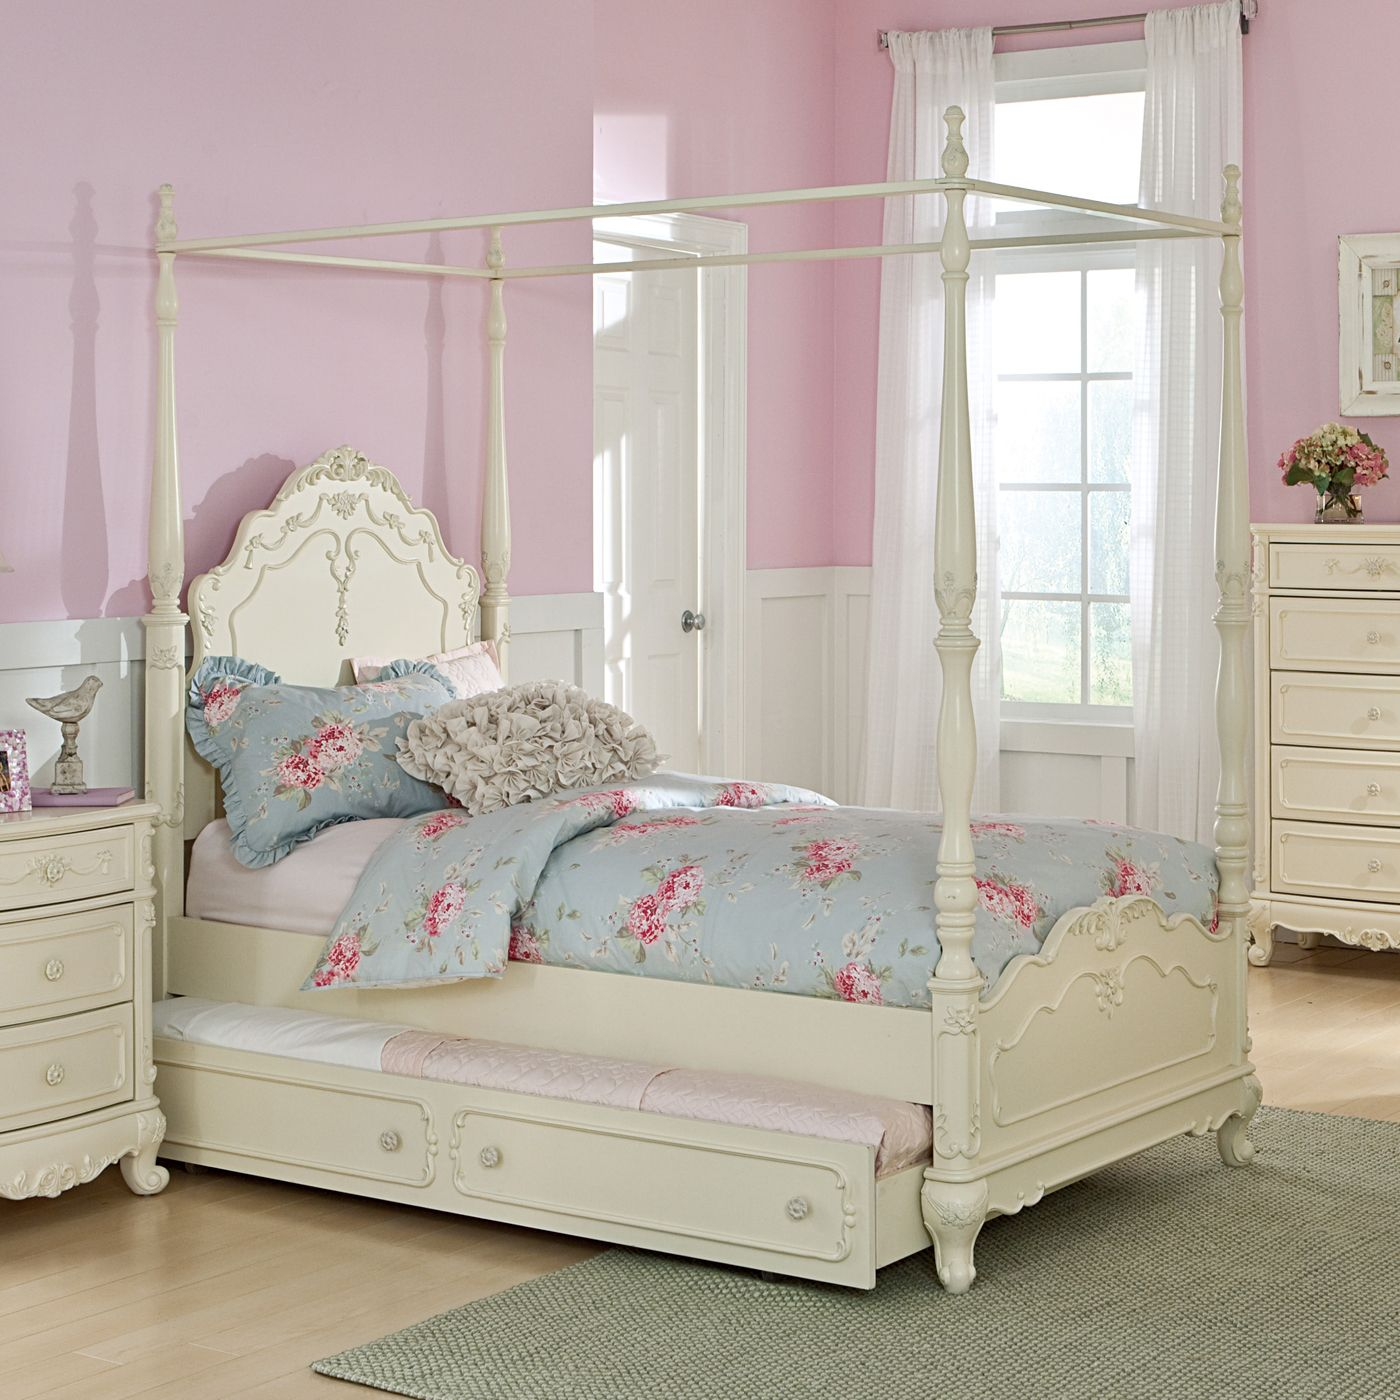 Homelegance 1386fpp 1 Cinderella Canopy Poster Bed Lowe S Canada